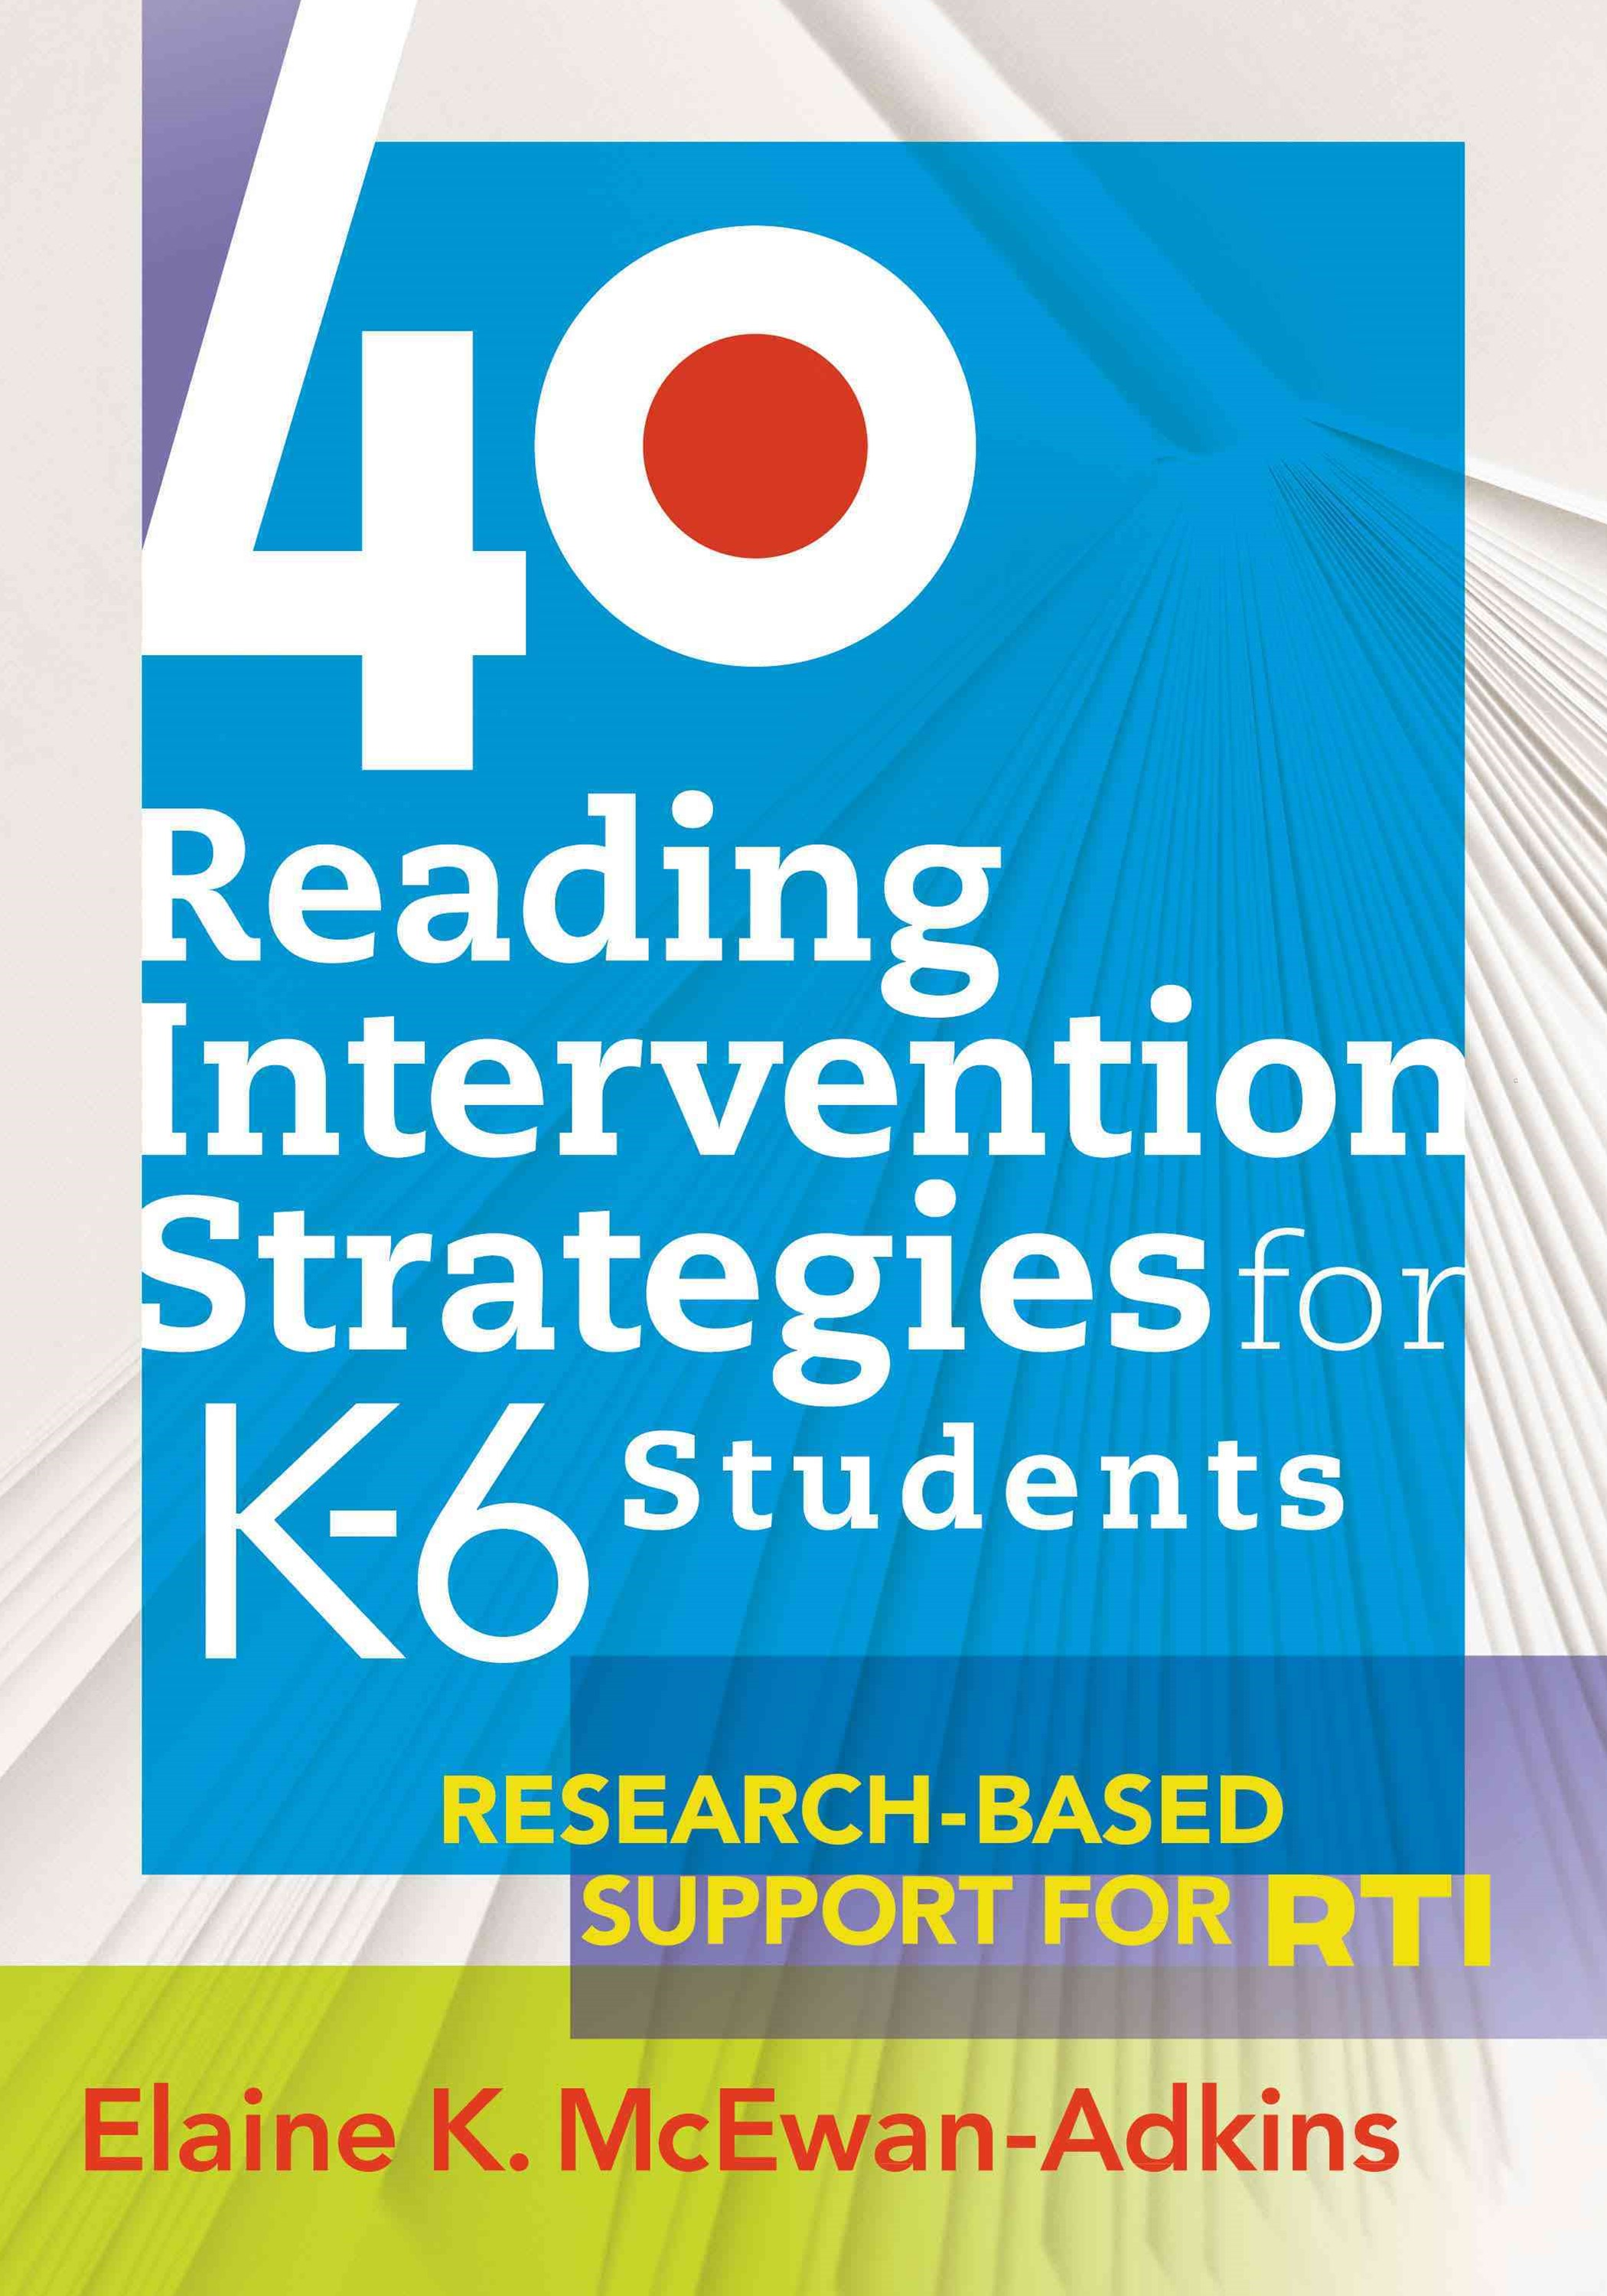 40 Reading Intervention Strategies for K-6 Students